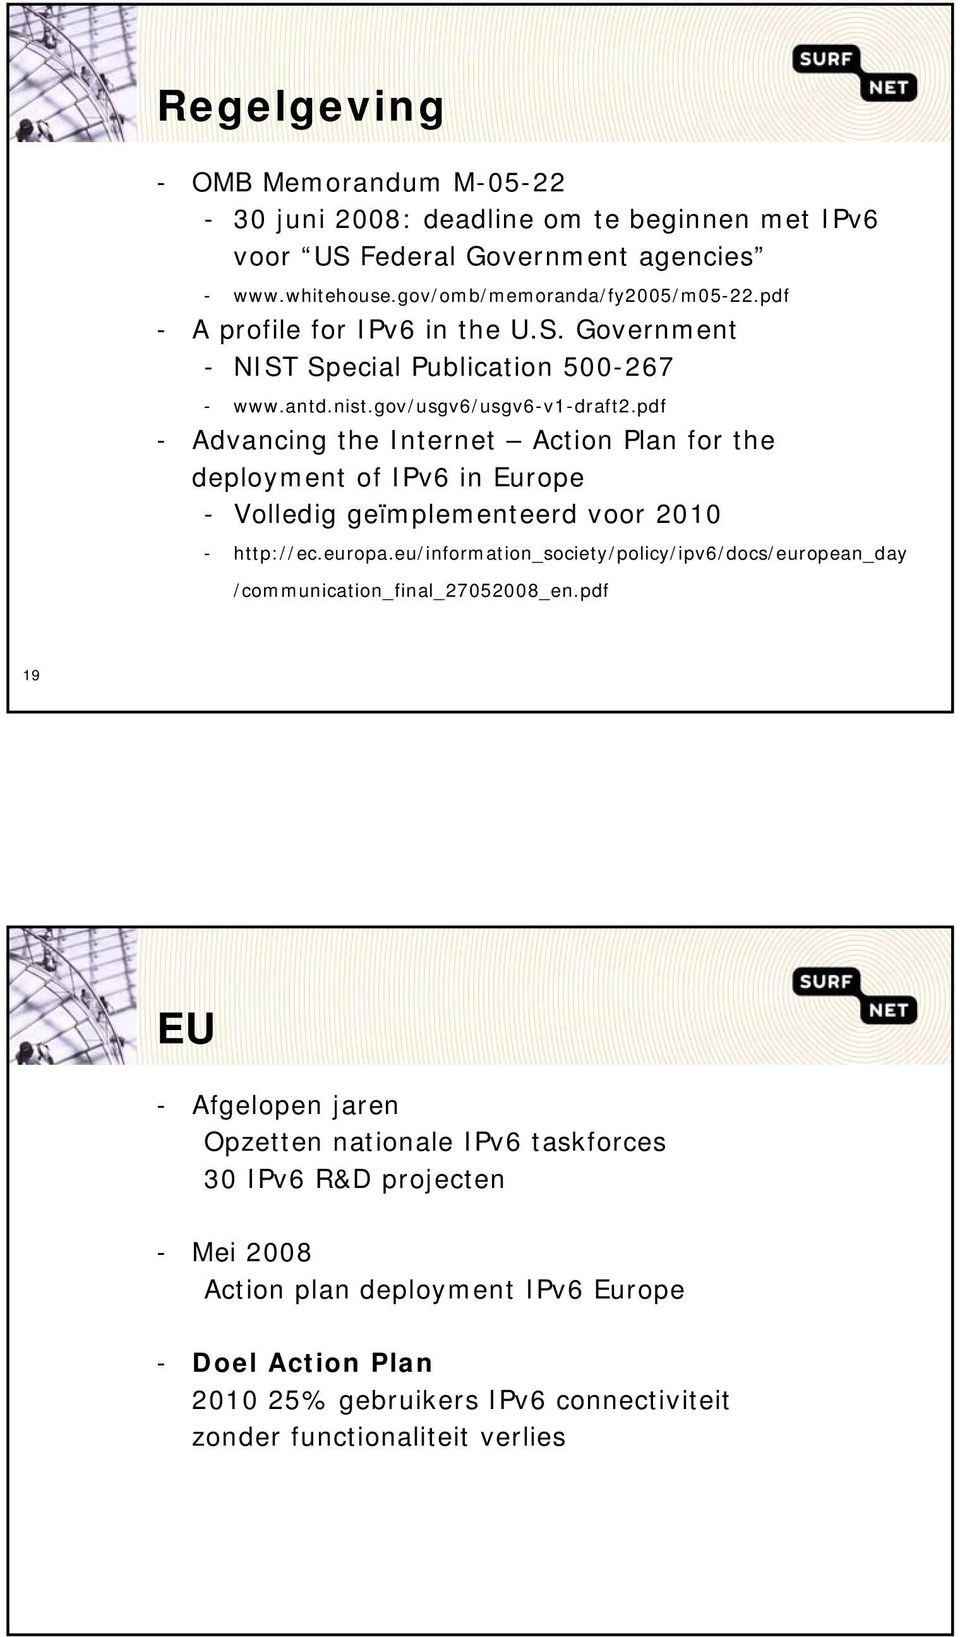 pdf - Advancing the Internet Action Plan for the deployment of IPv6 in Europe - Volledig geïmplementeerd voor 2010 - http://ec.europa.